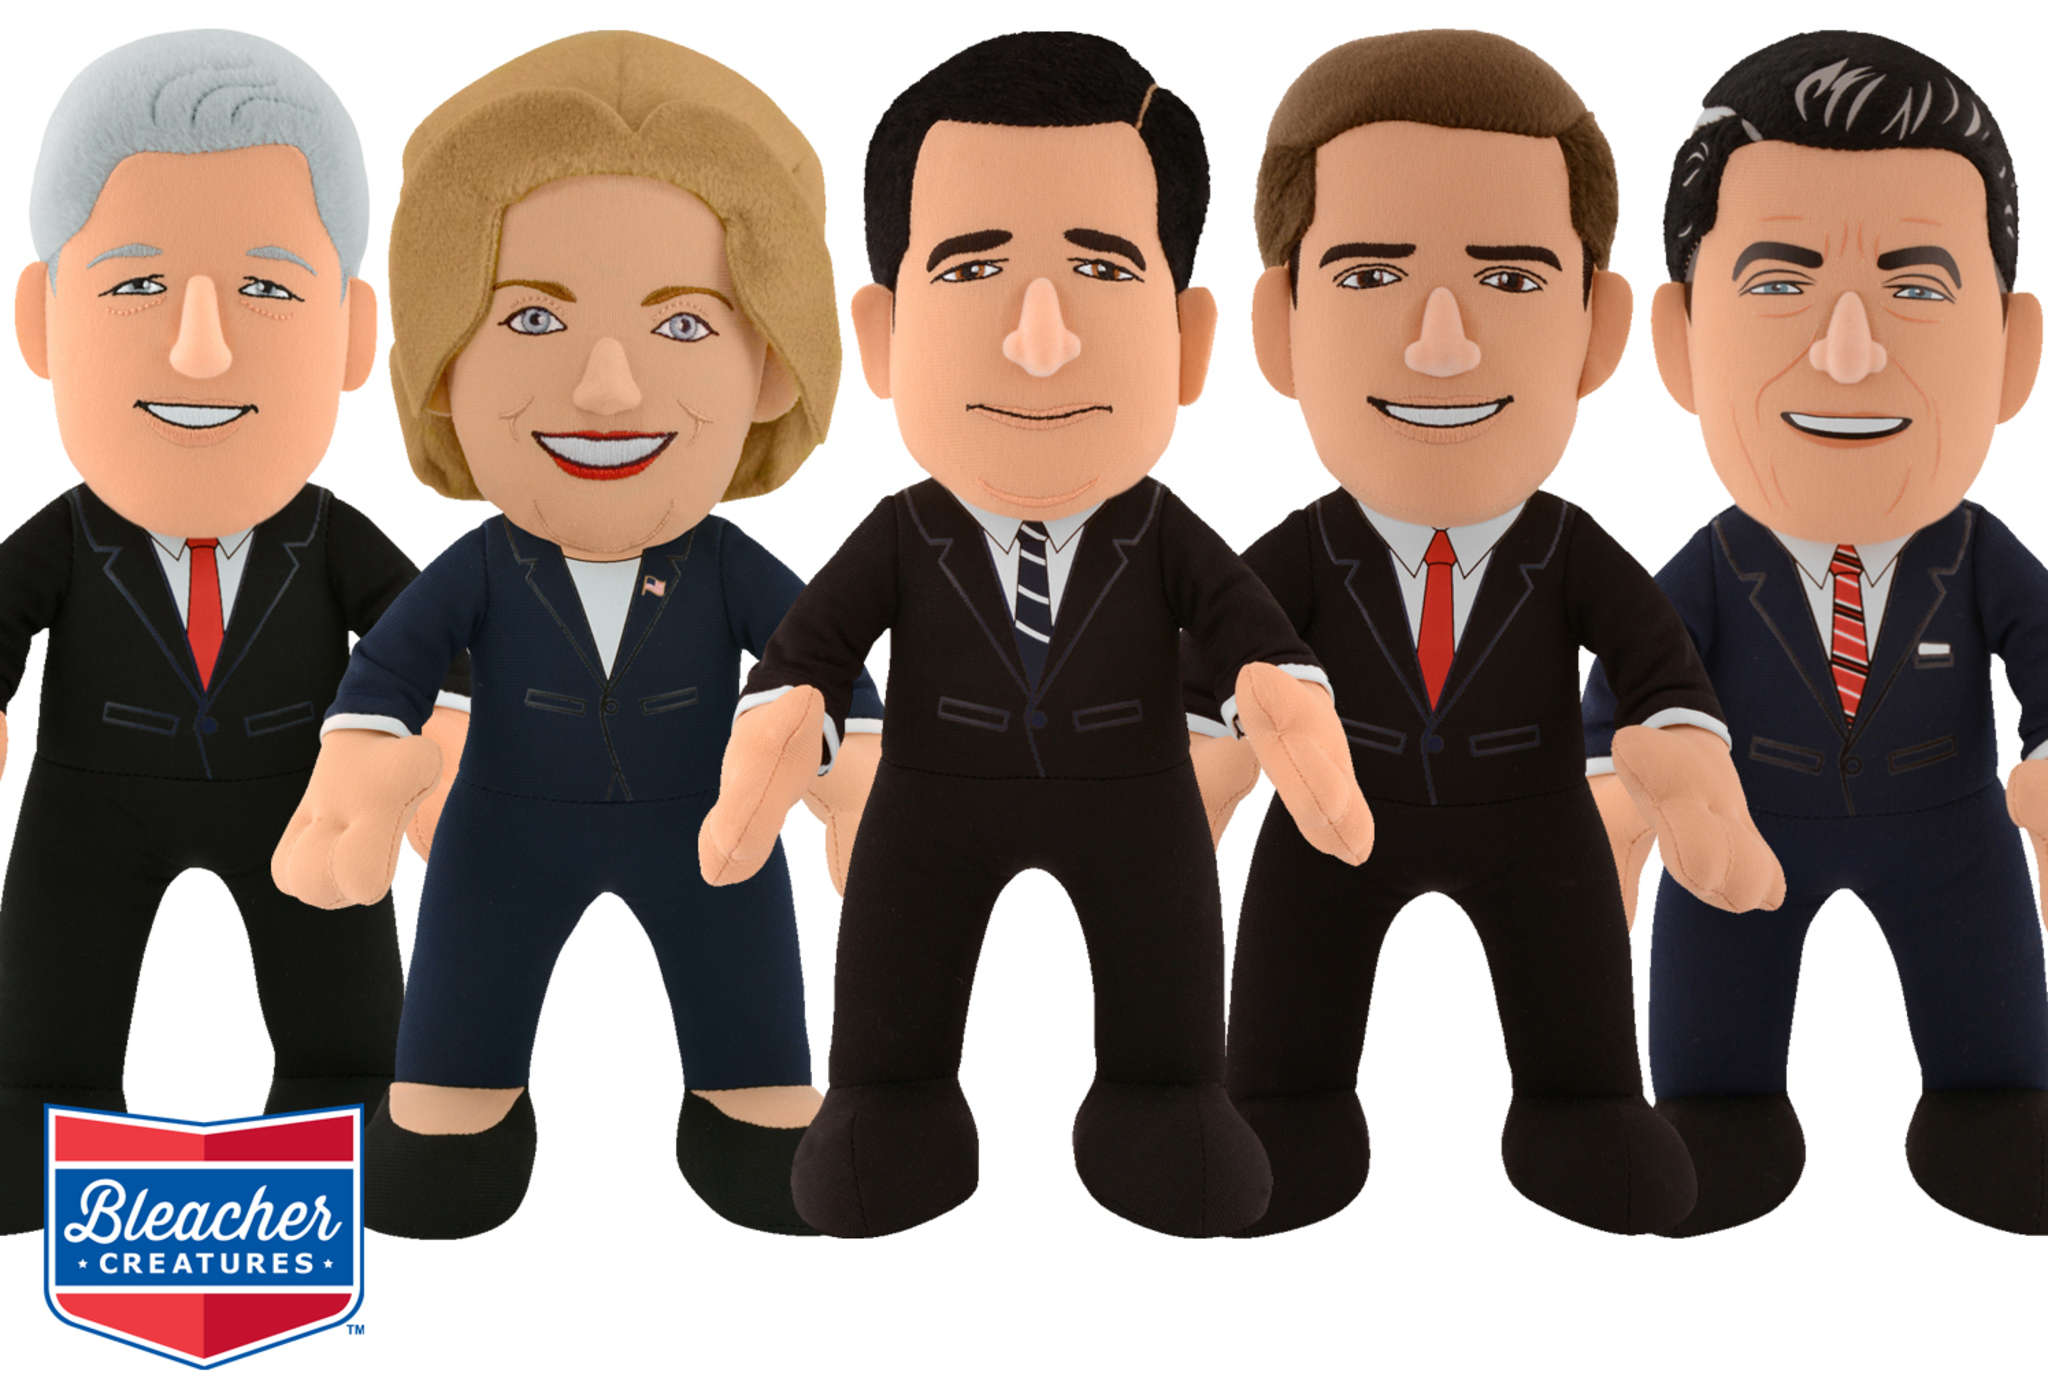 The latest plush figurines are (from left) Bill and Hillary Clinton, Ted Cruz, Marco Rubio, Ronald Reagan.